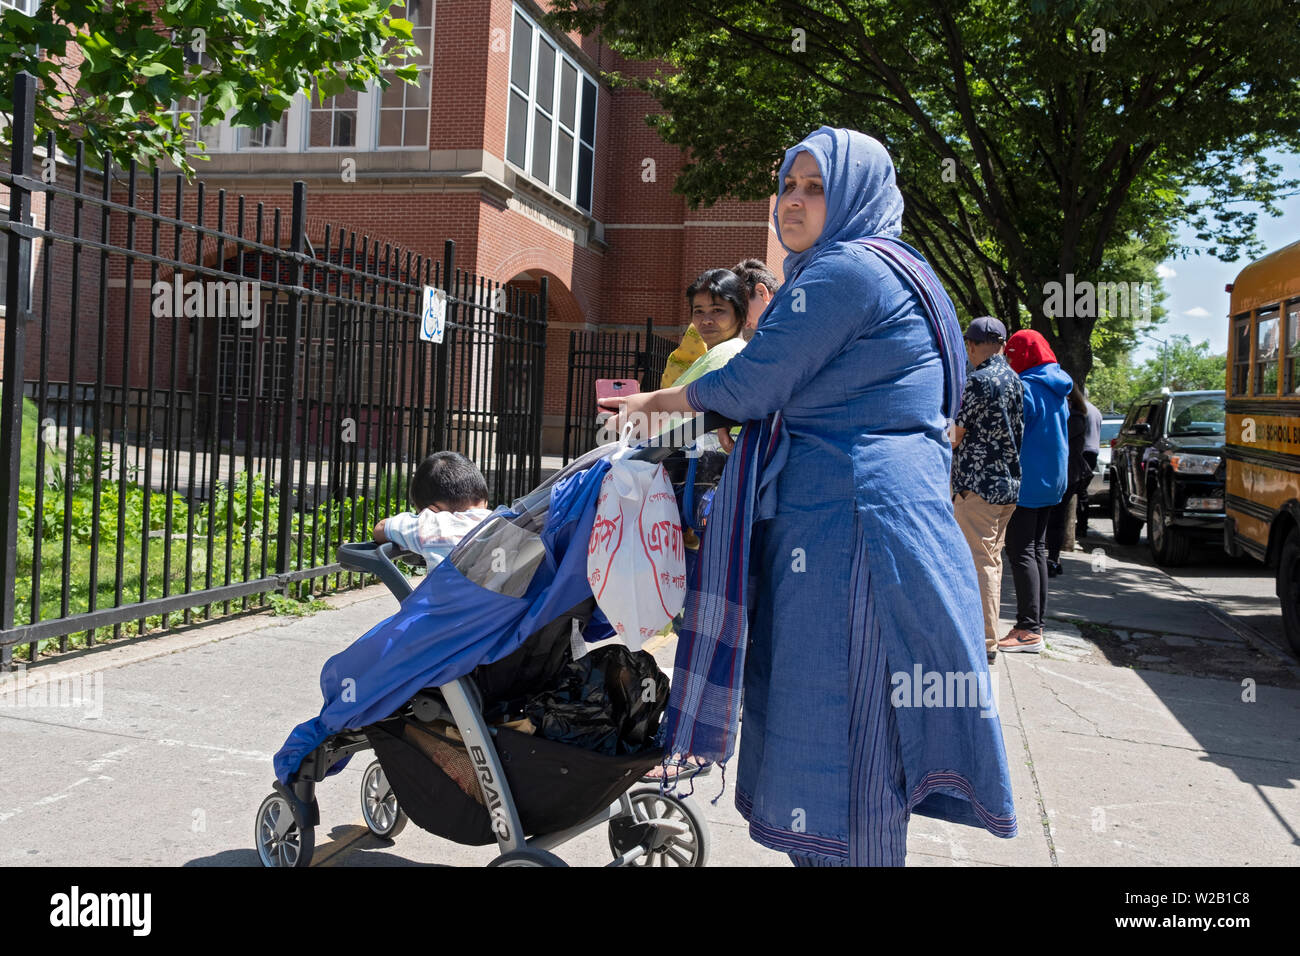 A Muslim woman in a hijab and ethnic clothing waits for her child outside a school, PS69, in Jackson Heights, Queens, New York City. - Stock Image